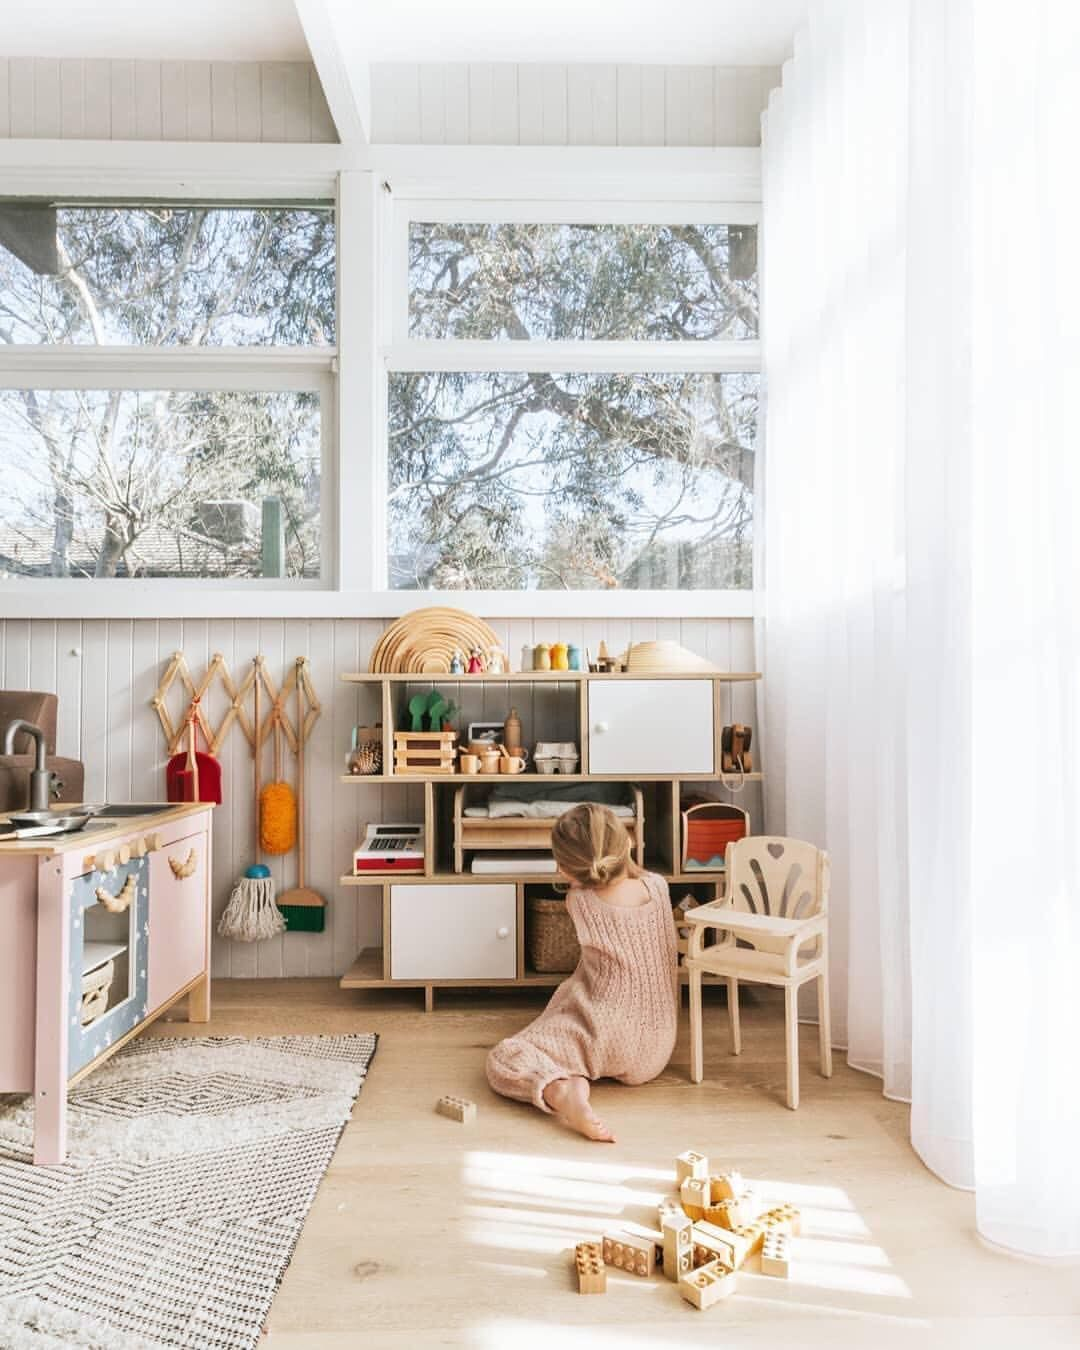 Homedesignideas Eu: Your Children Need To Upgrade The Playing Room According